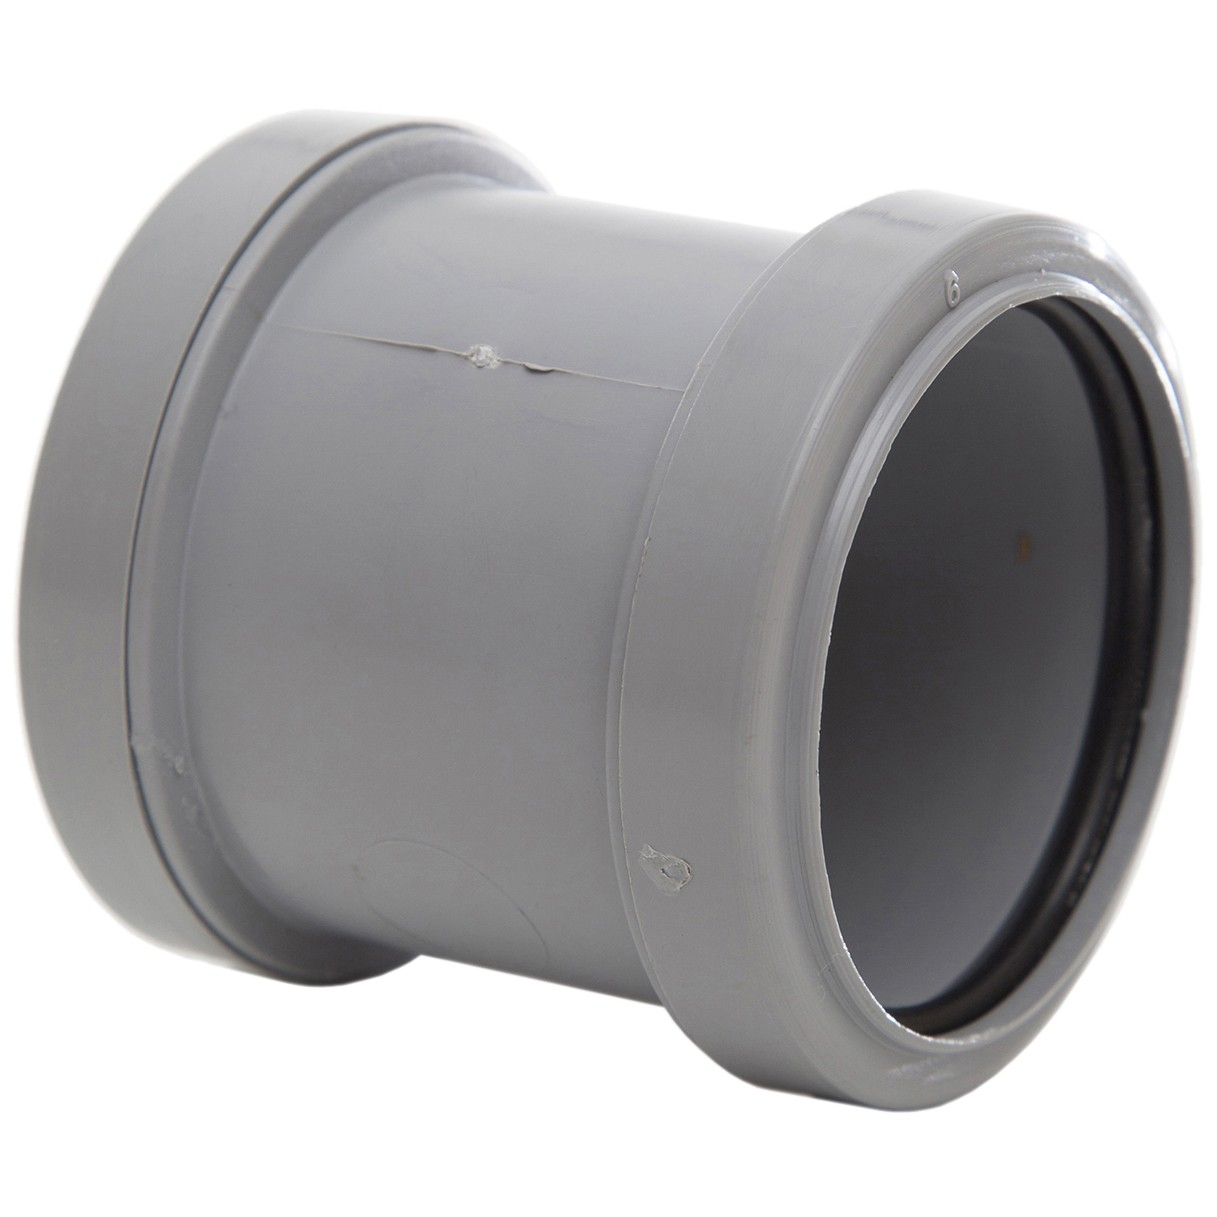 Polypipe 50mm Push Fit Waste Straight Coupler - Grey